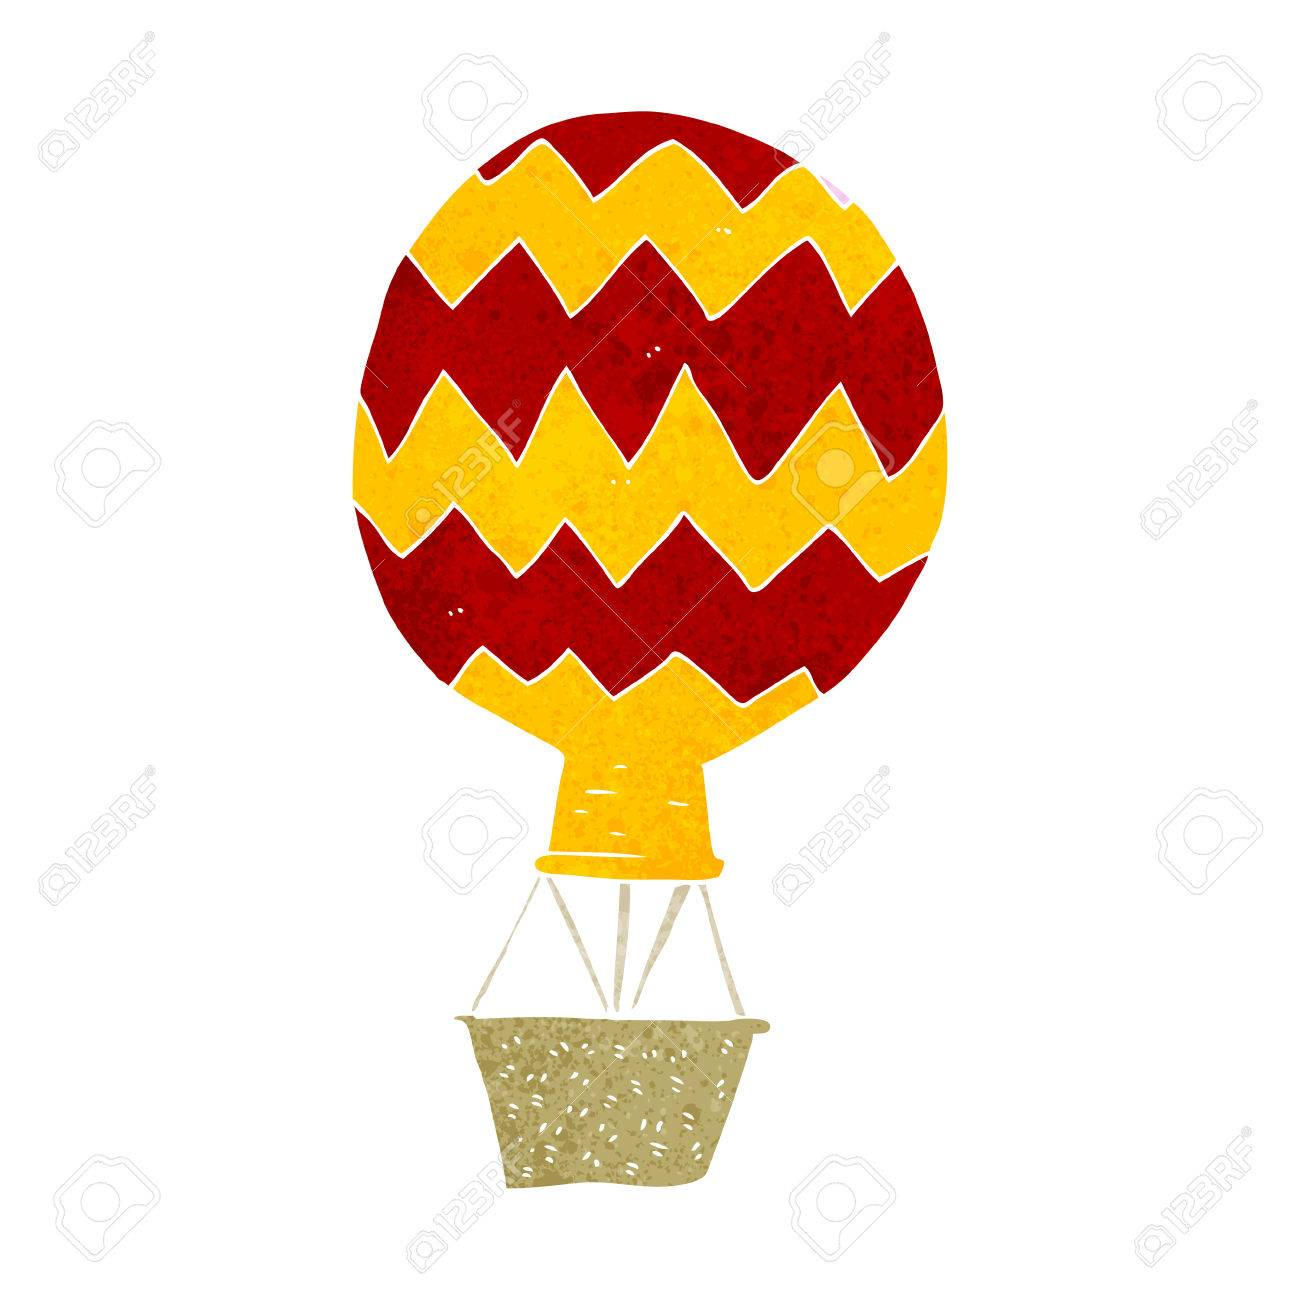 1300x1300 Cartoon Hot Air Balloon Royalty Free Cliparts, Vectors, And Stock